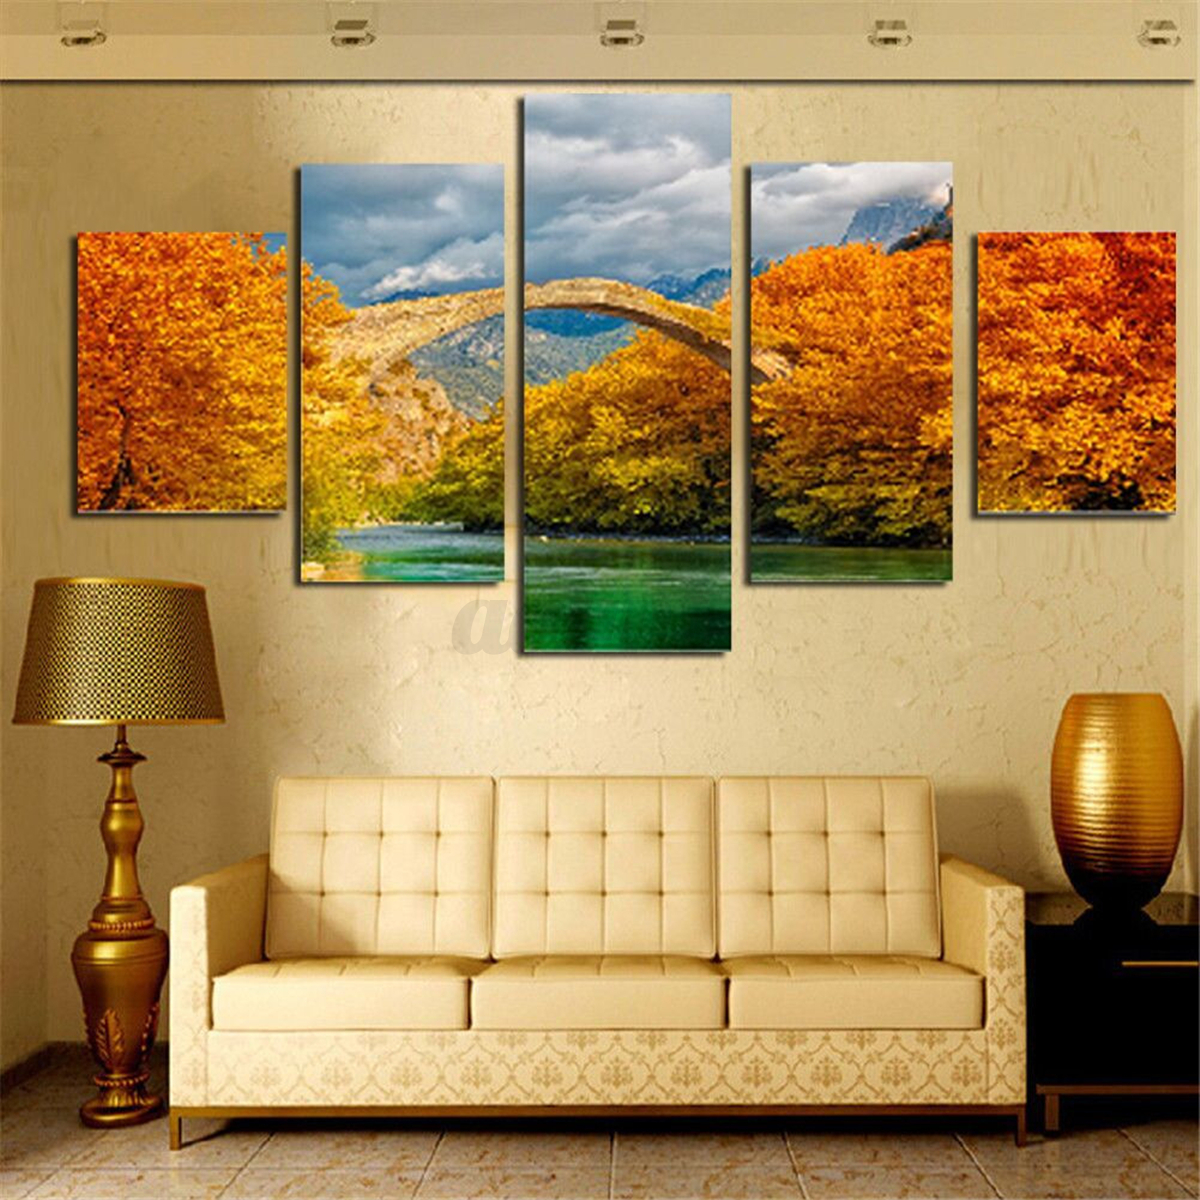 Hand Painted Flower City Canvas Painting Print Art Wall Bedroom Decor No Frame Ebay